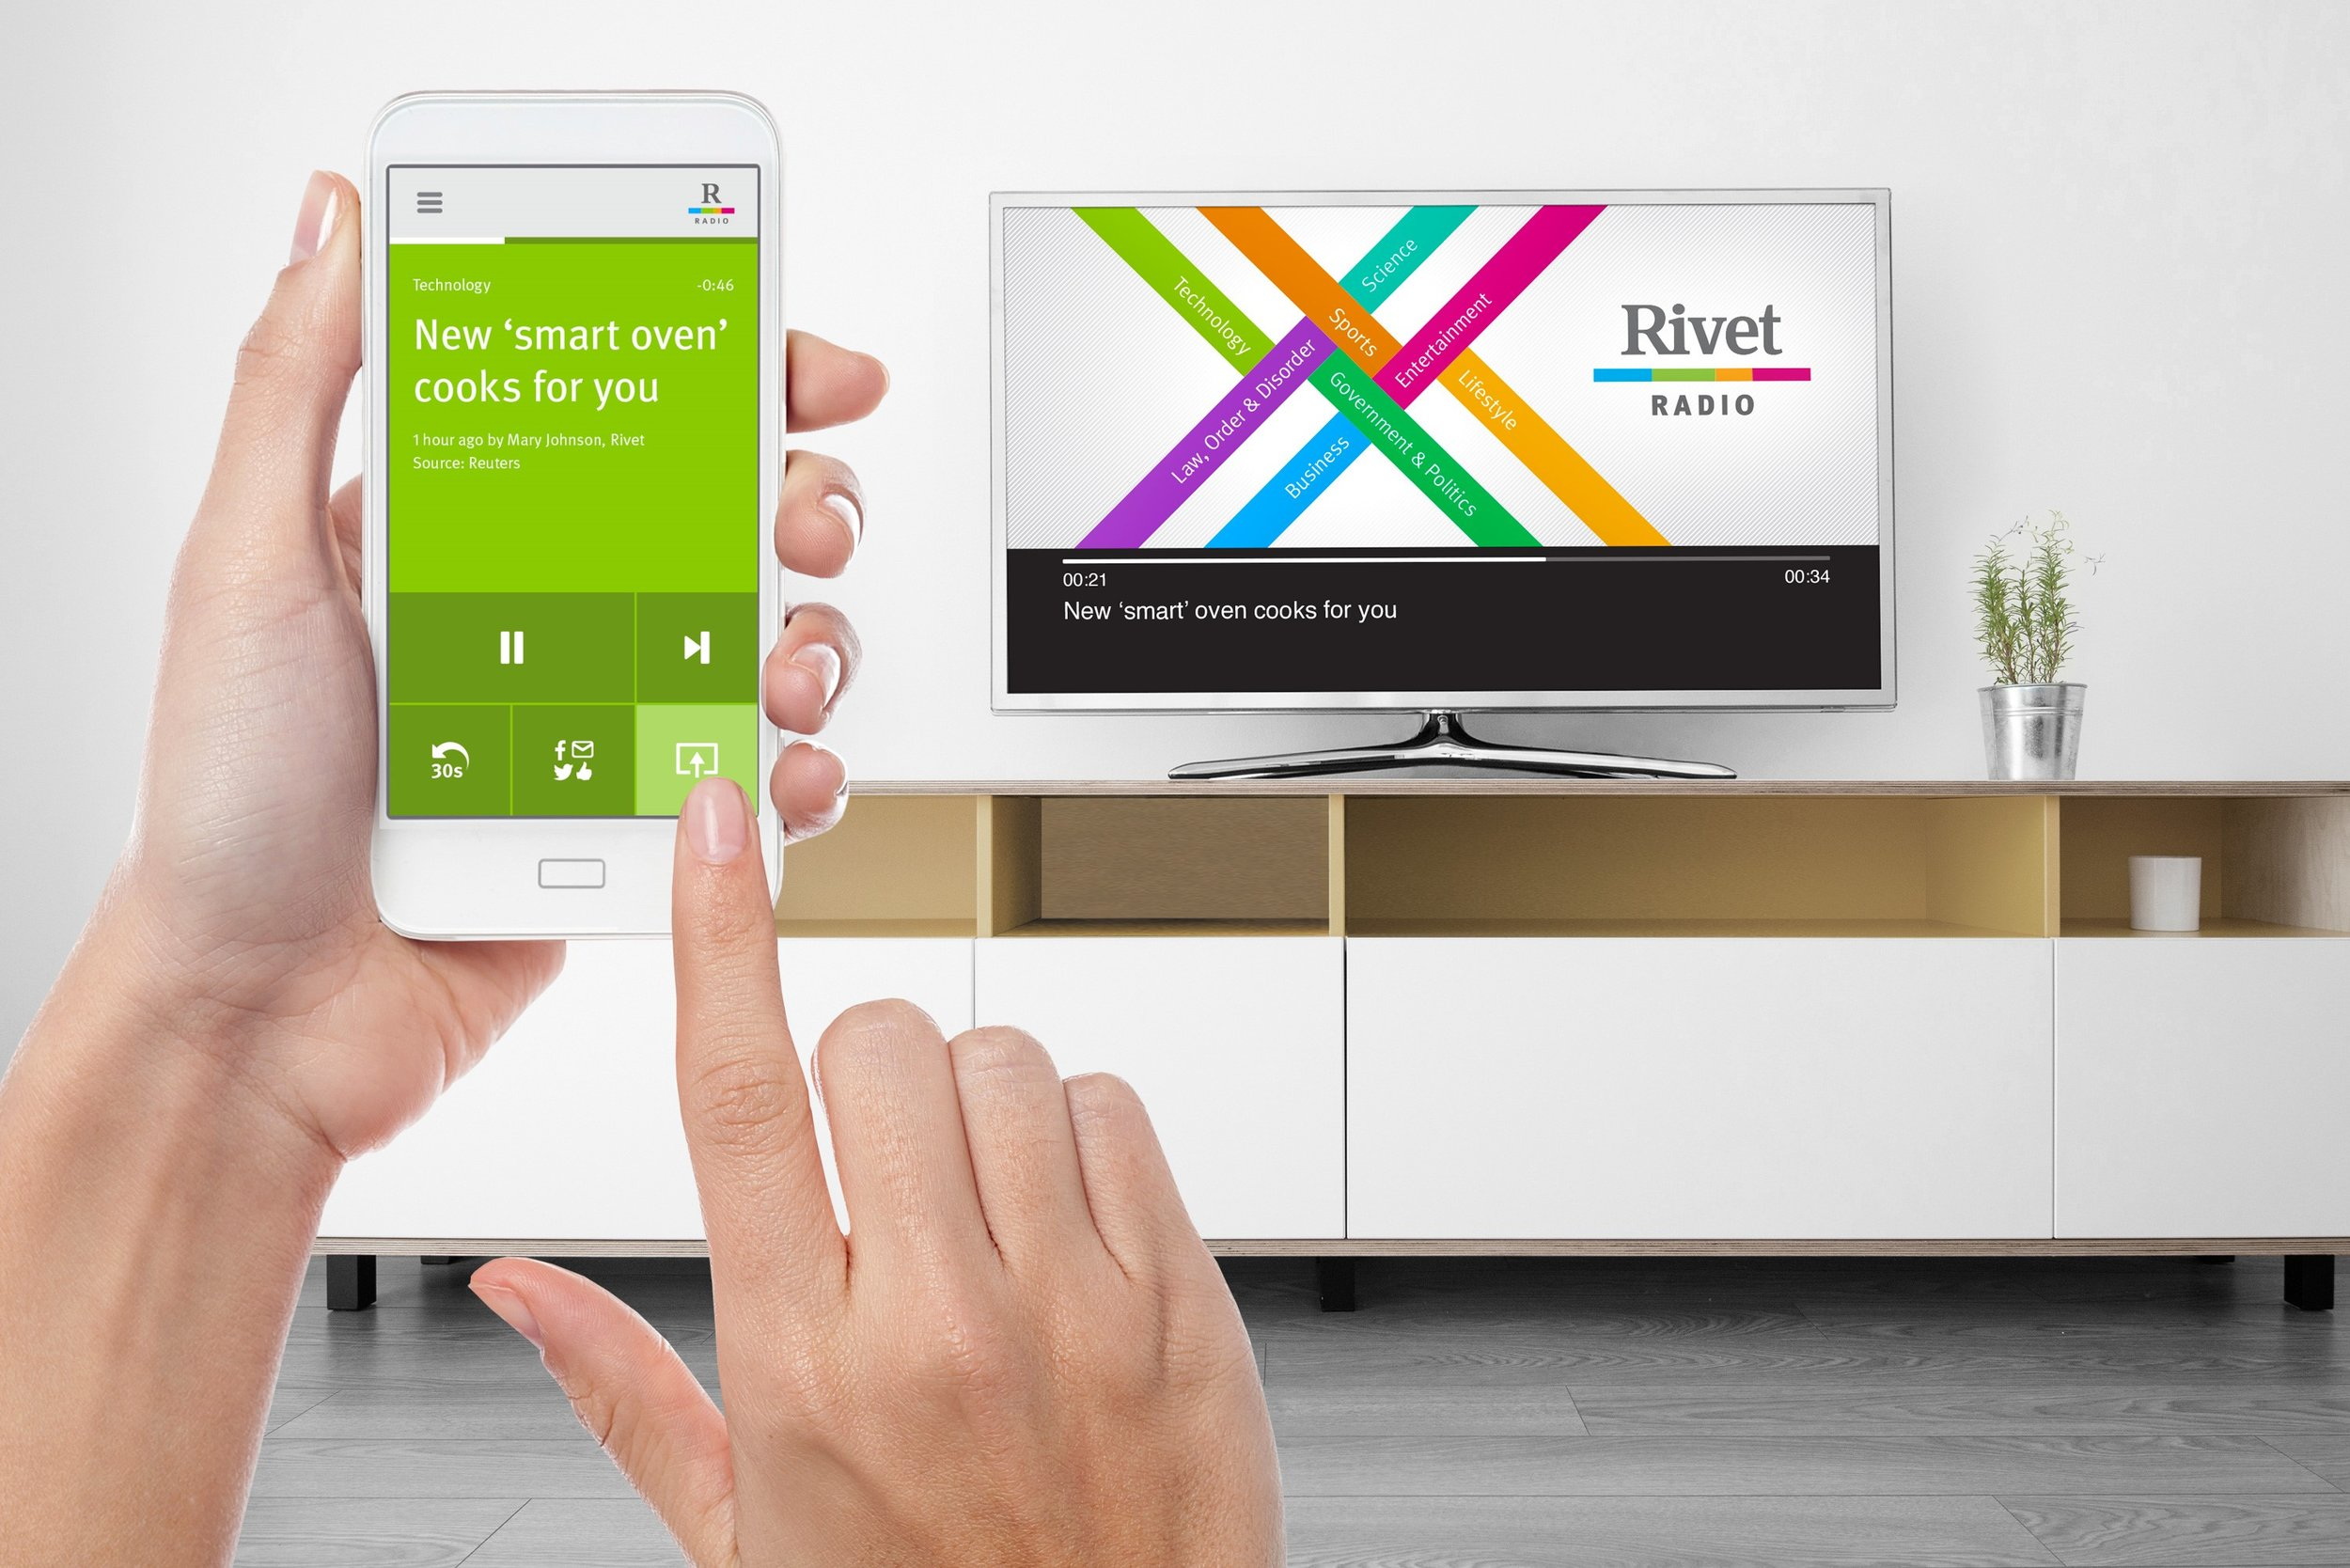 With Fling, Rivet Radio customers get the capability to share music and videos on the largest screen in the house.